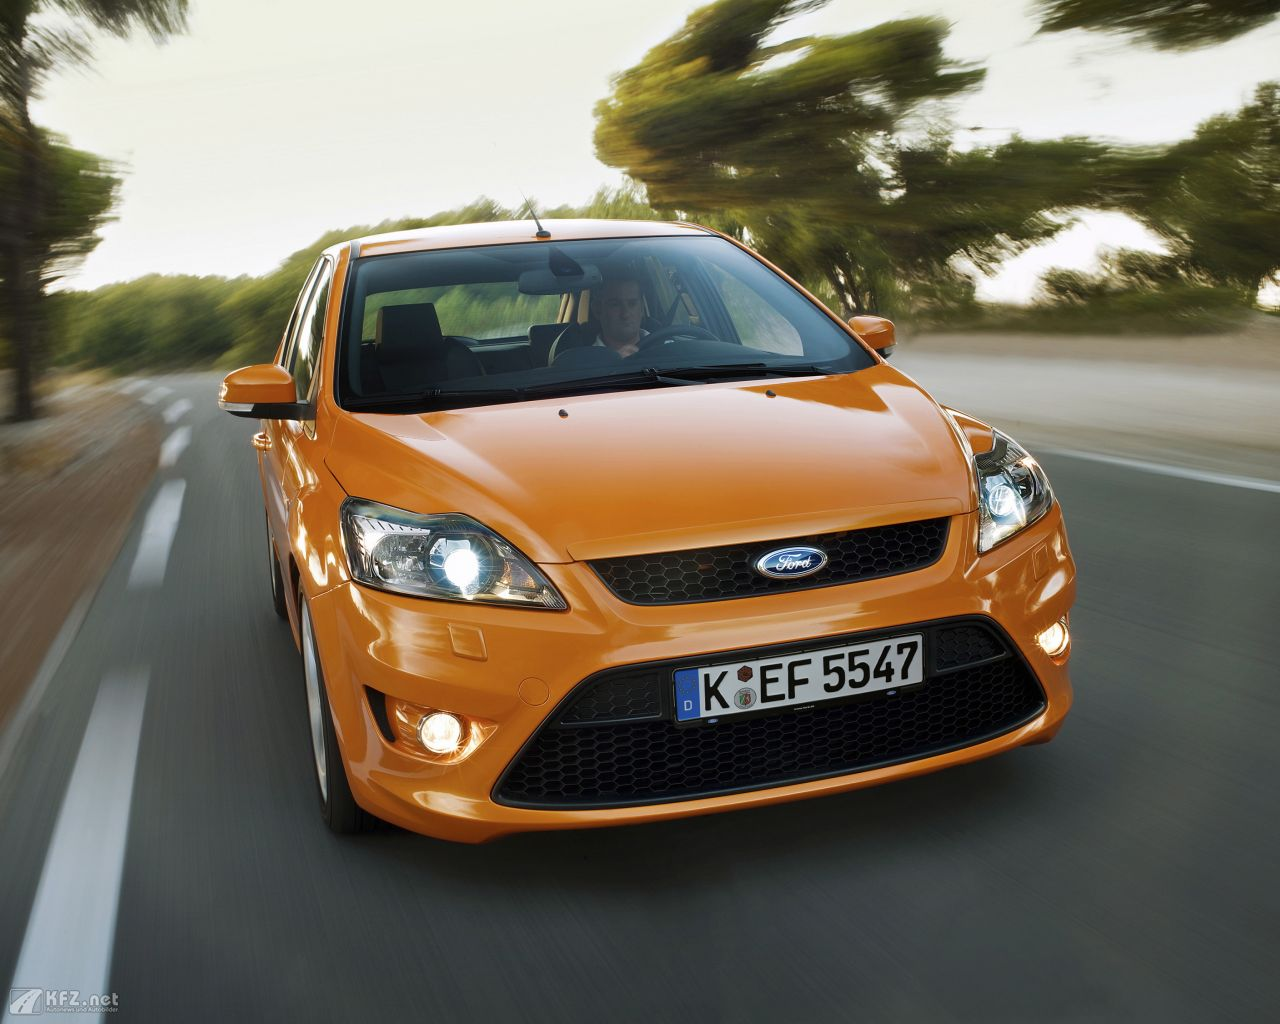 ford-focus-1280x1024-10